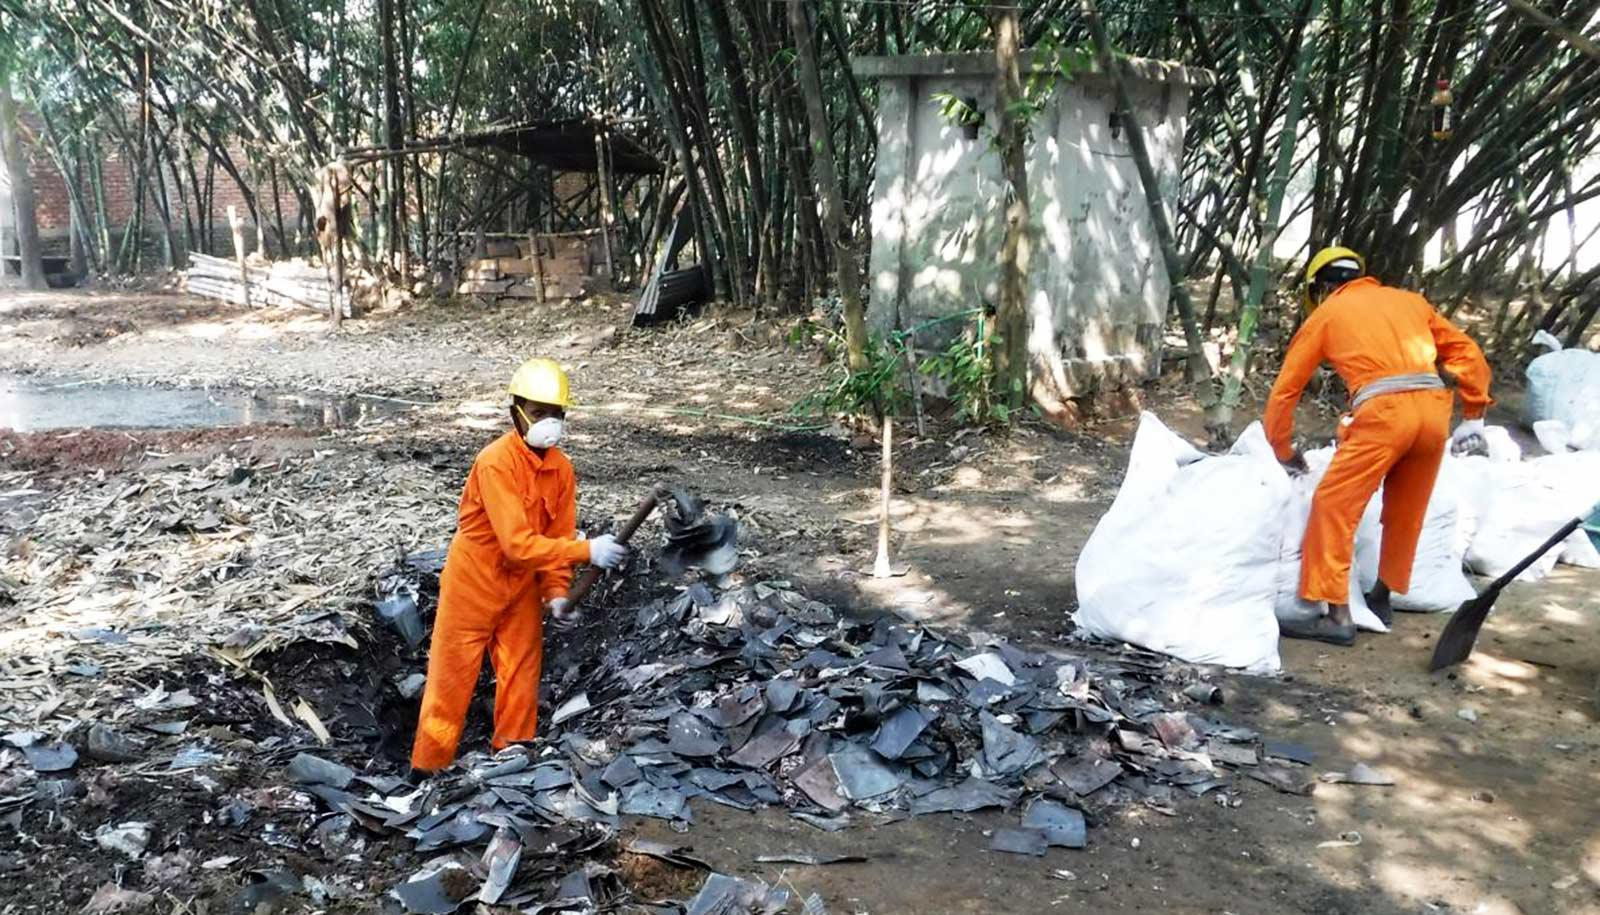 workers in orange suits in and near burn site